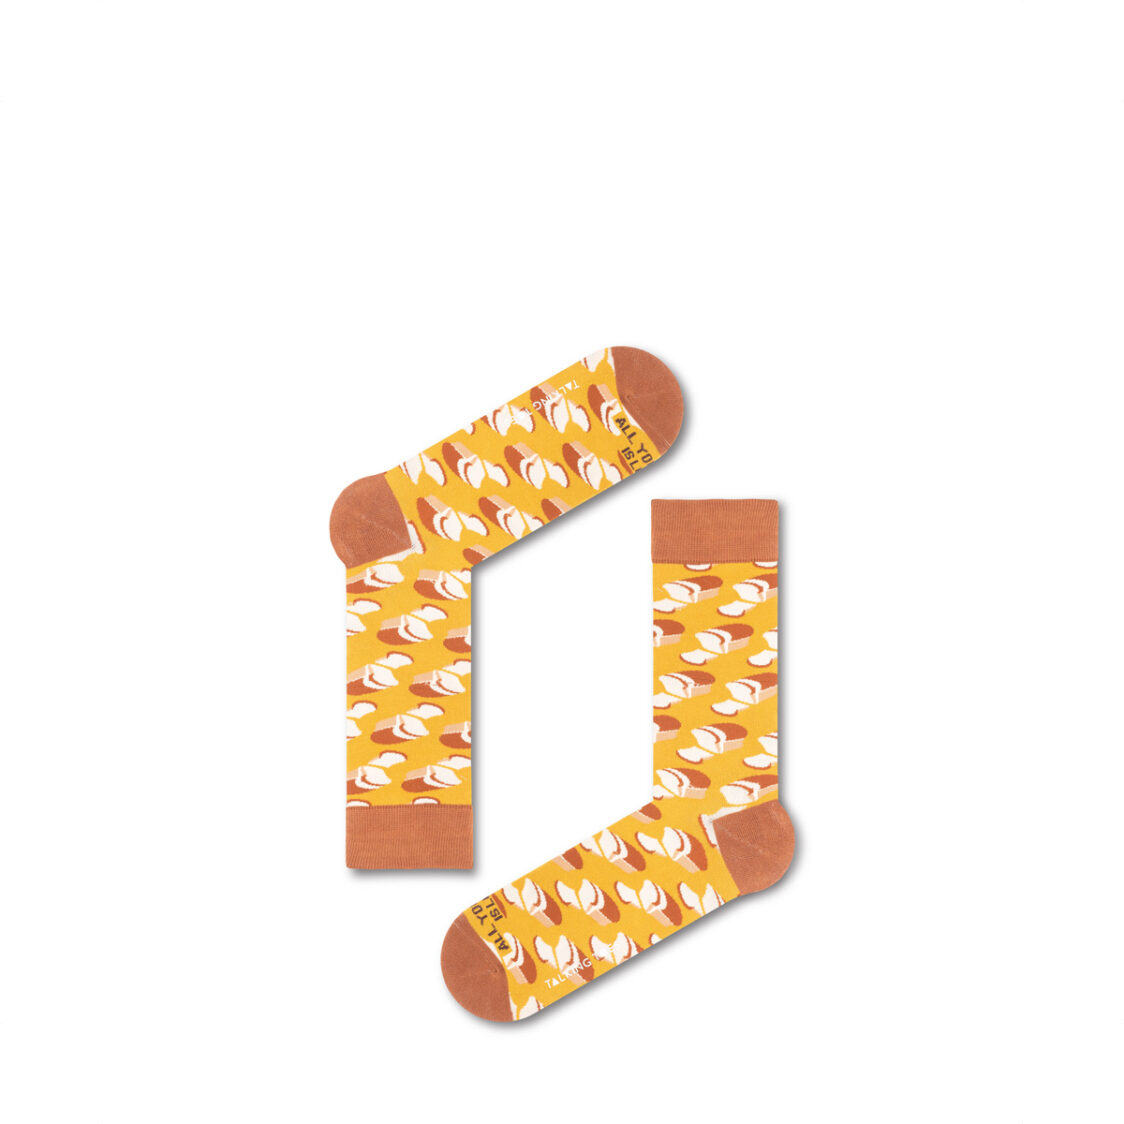 Talking Toes All You Need is Love Bread Socks